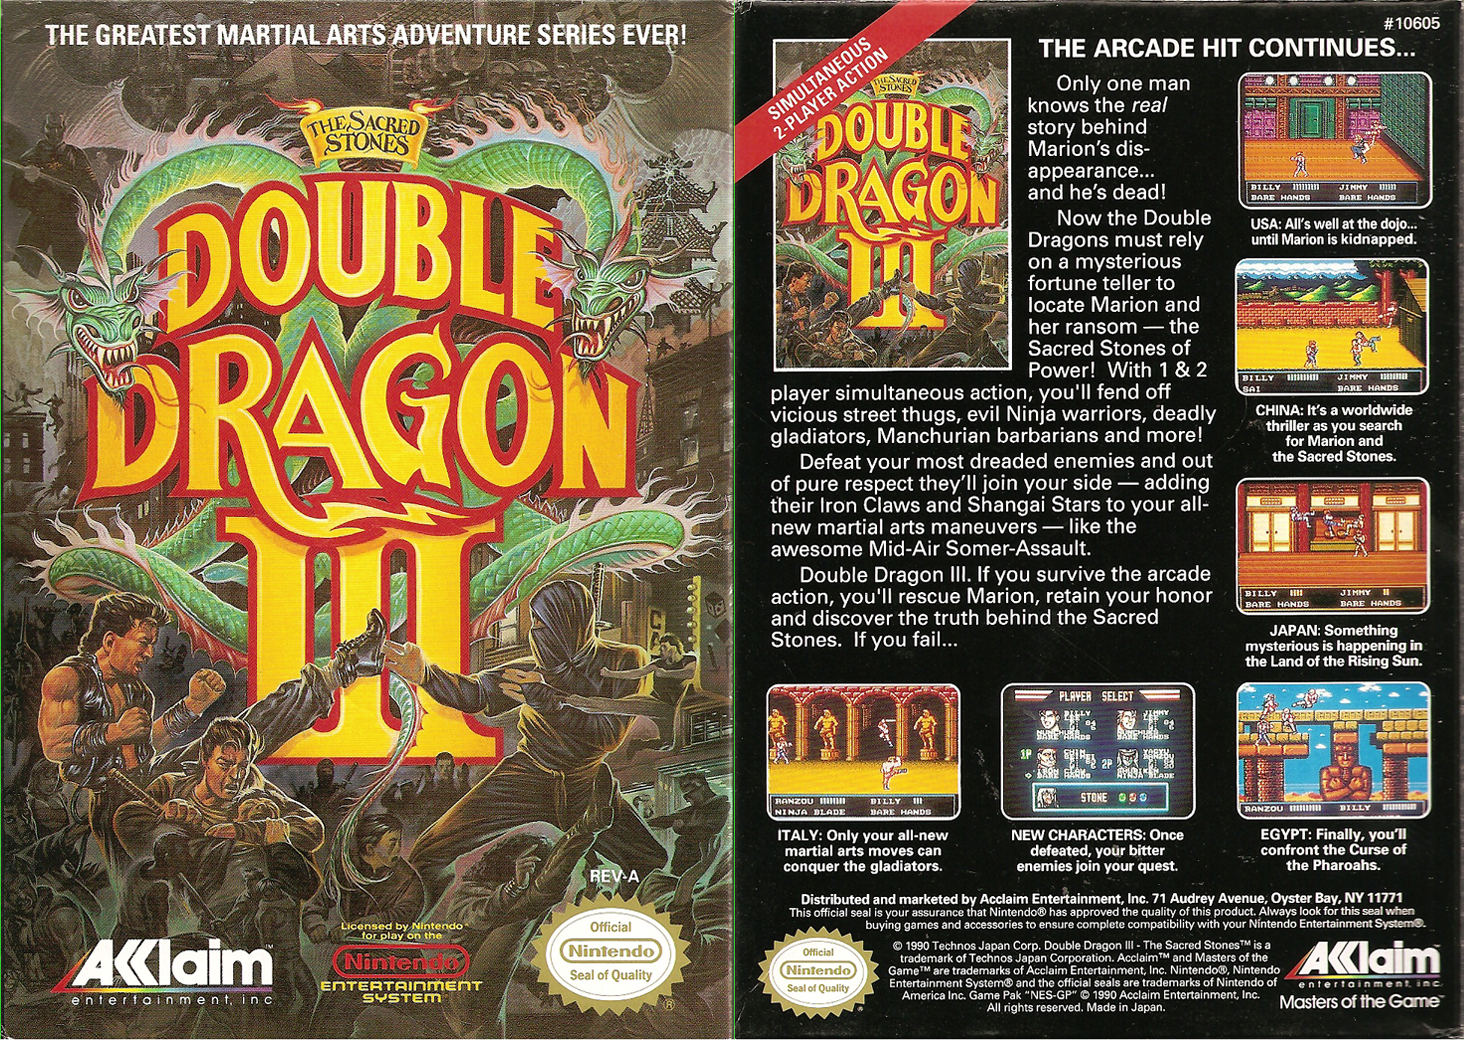 Double Dragon Dojo Double Dragon III NES version review